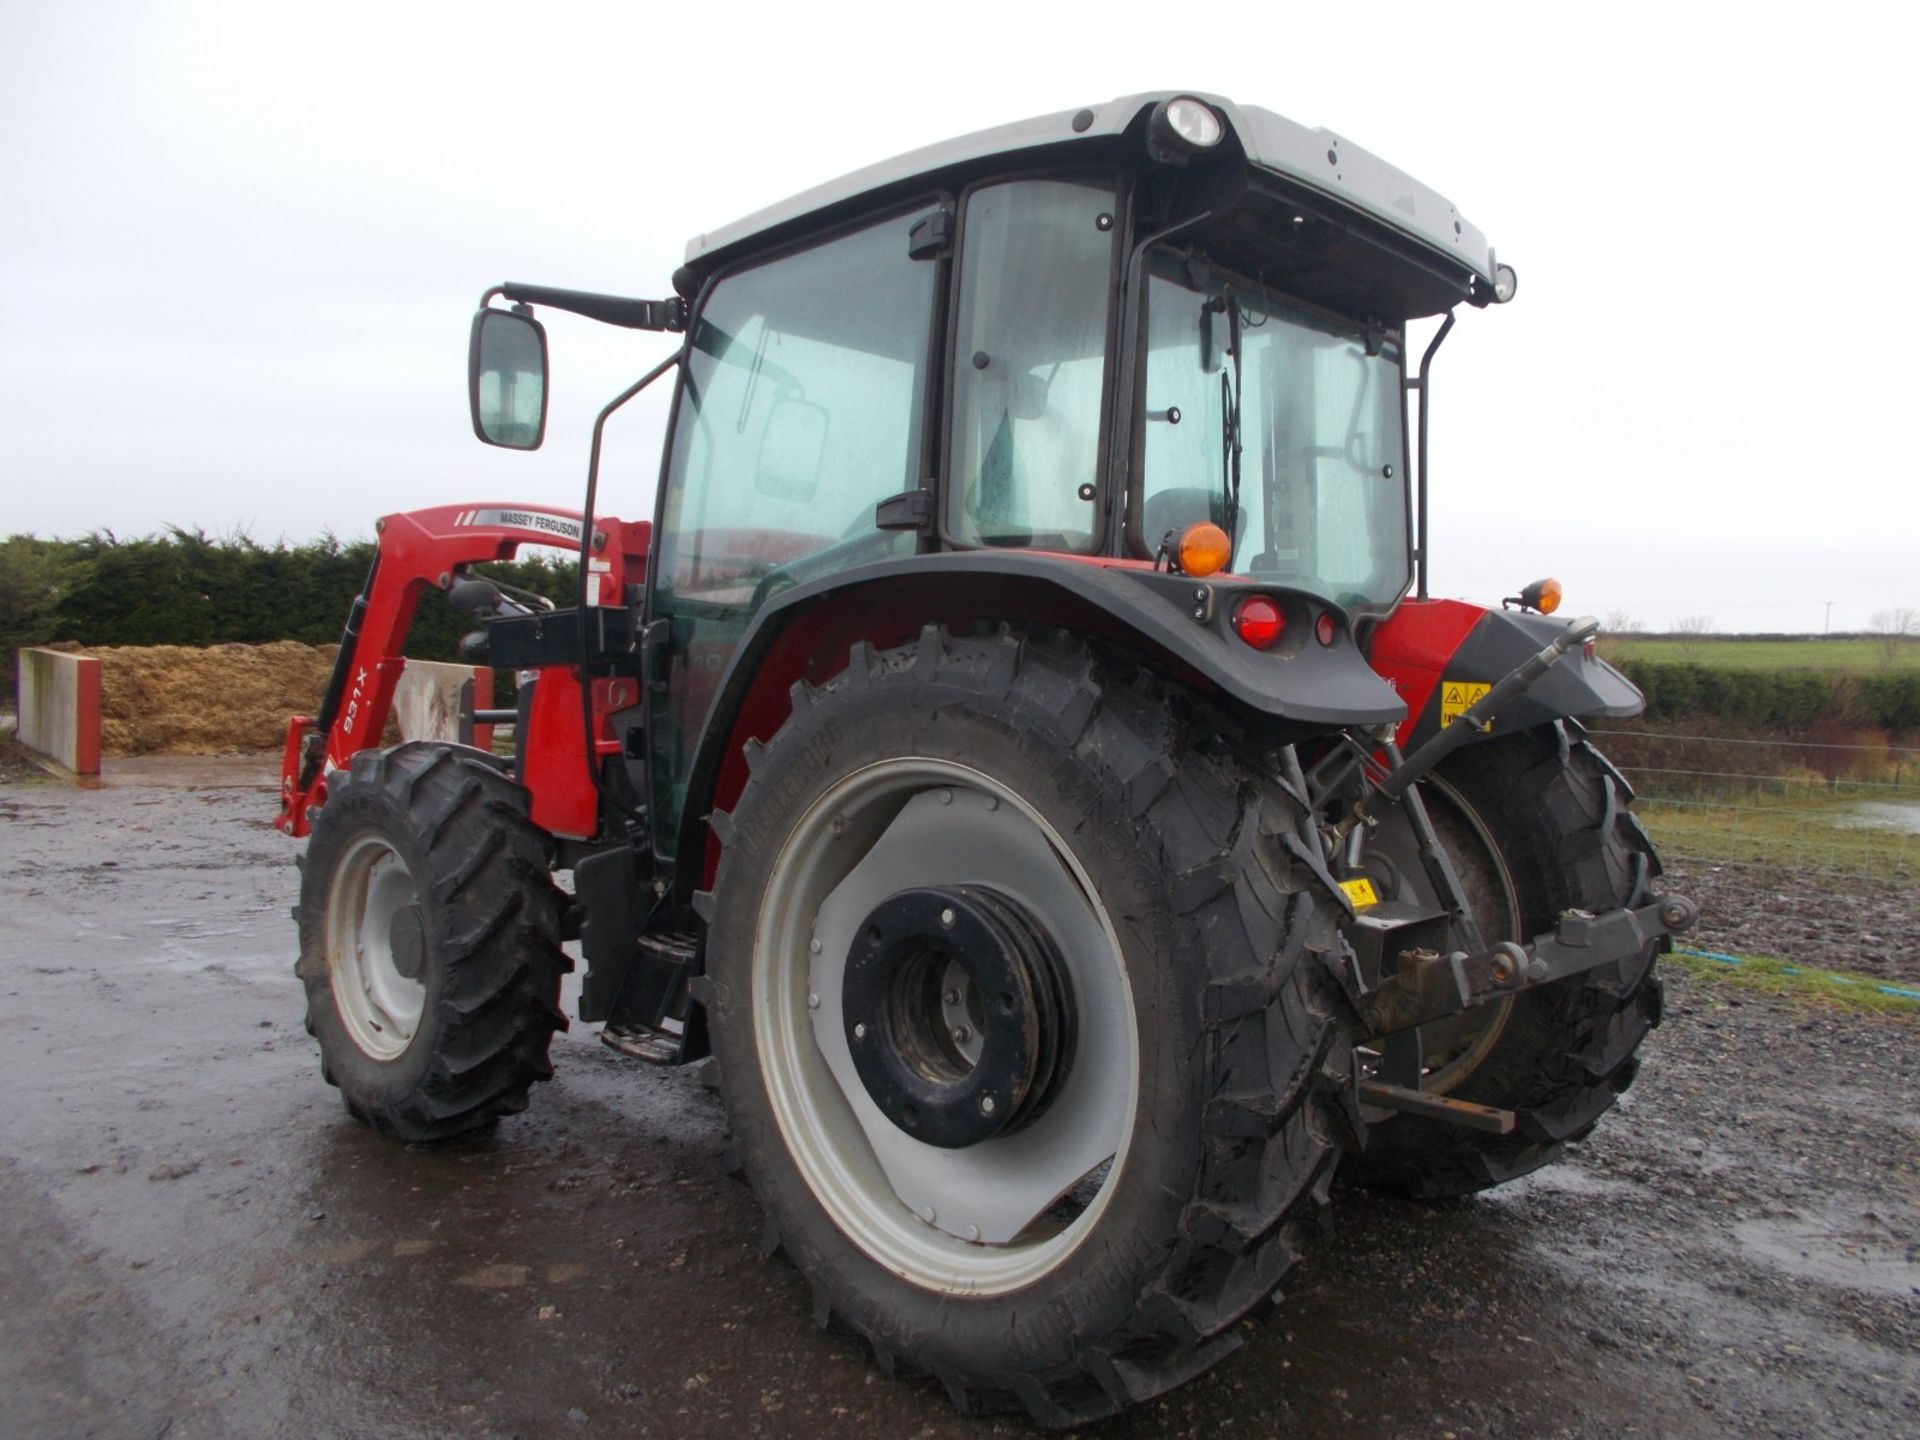 2018 MASSEY FERGUSON 4710 4WD TRACTOR WITH LOADER, AGCO 3.3 LITRE 3CYL TURBO DIESEL *PLUS VAT* - Image 5 of 21